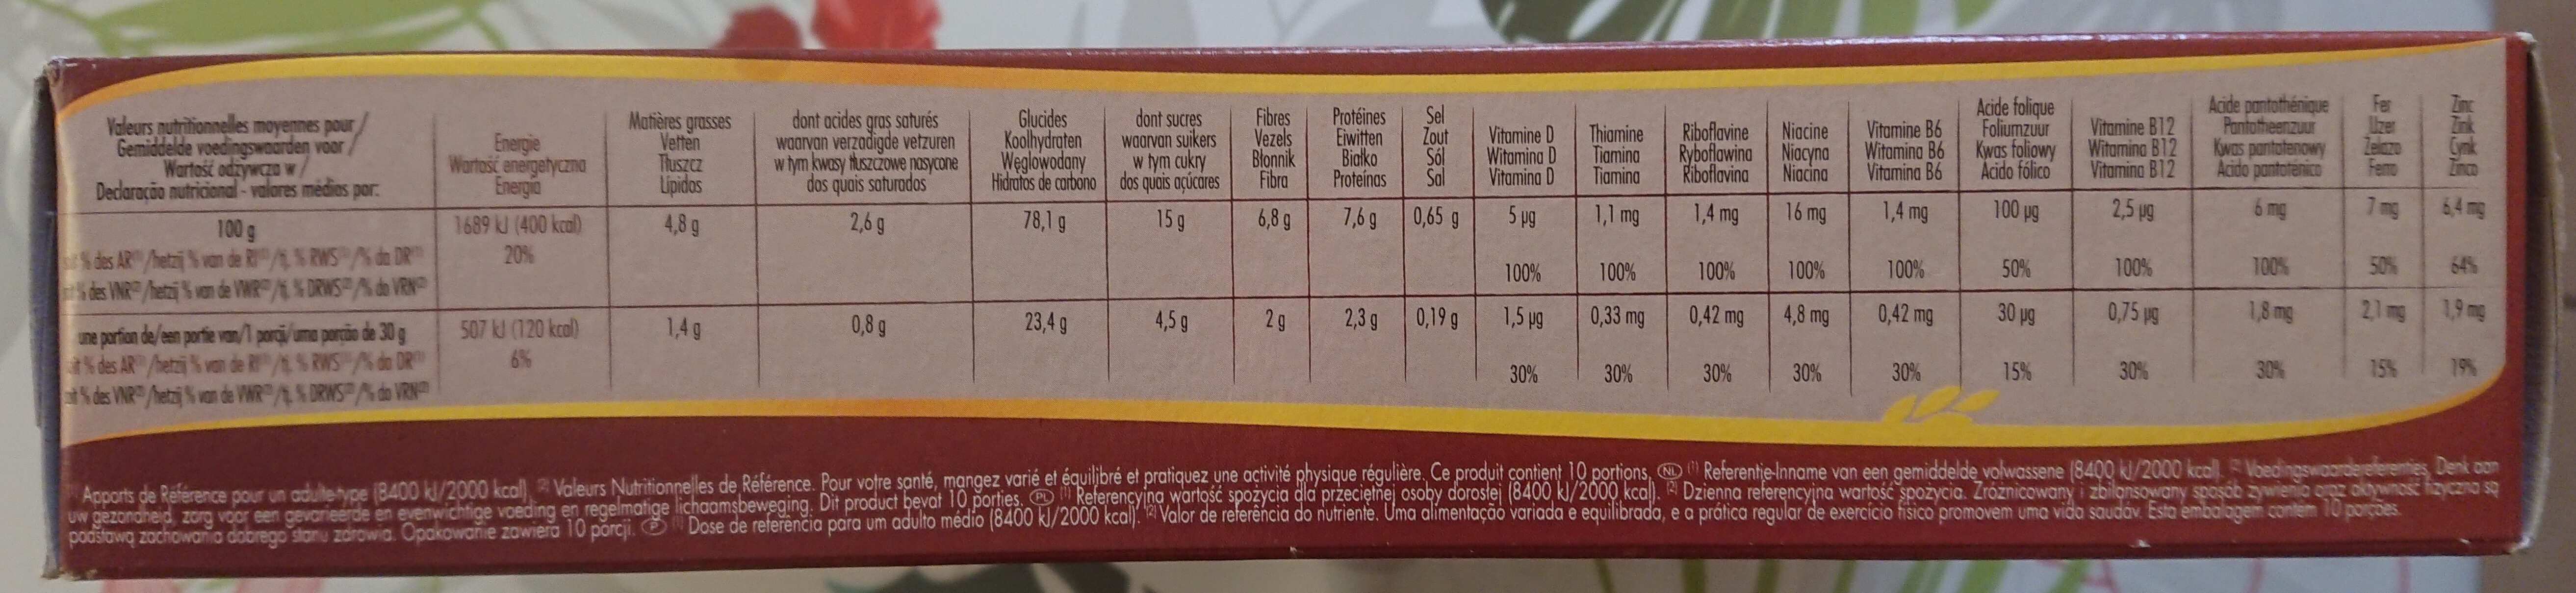 Forme & chocolat - Informations nutritionnelles - fr